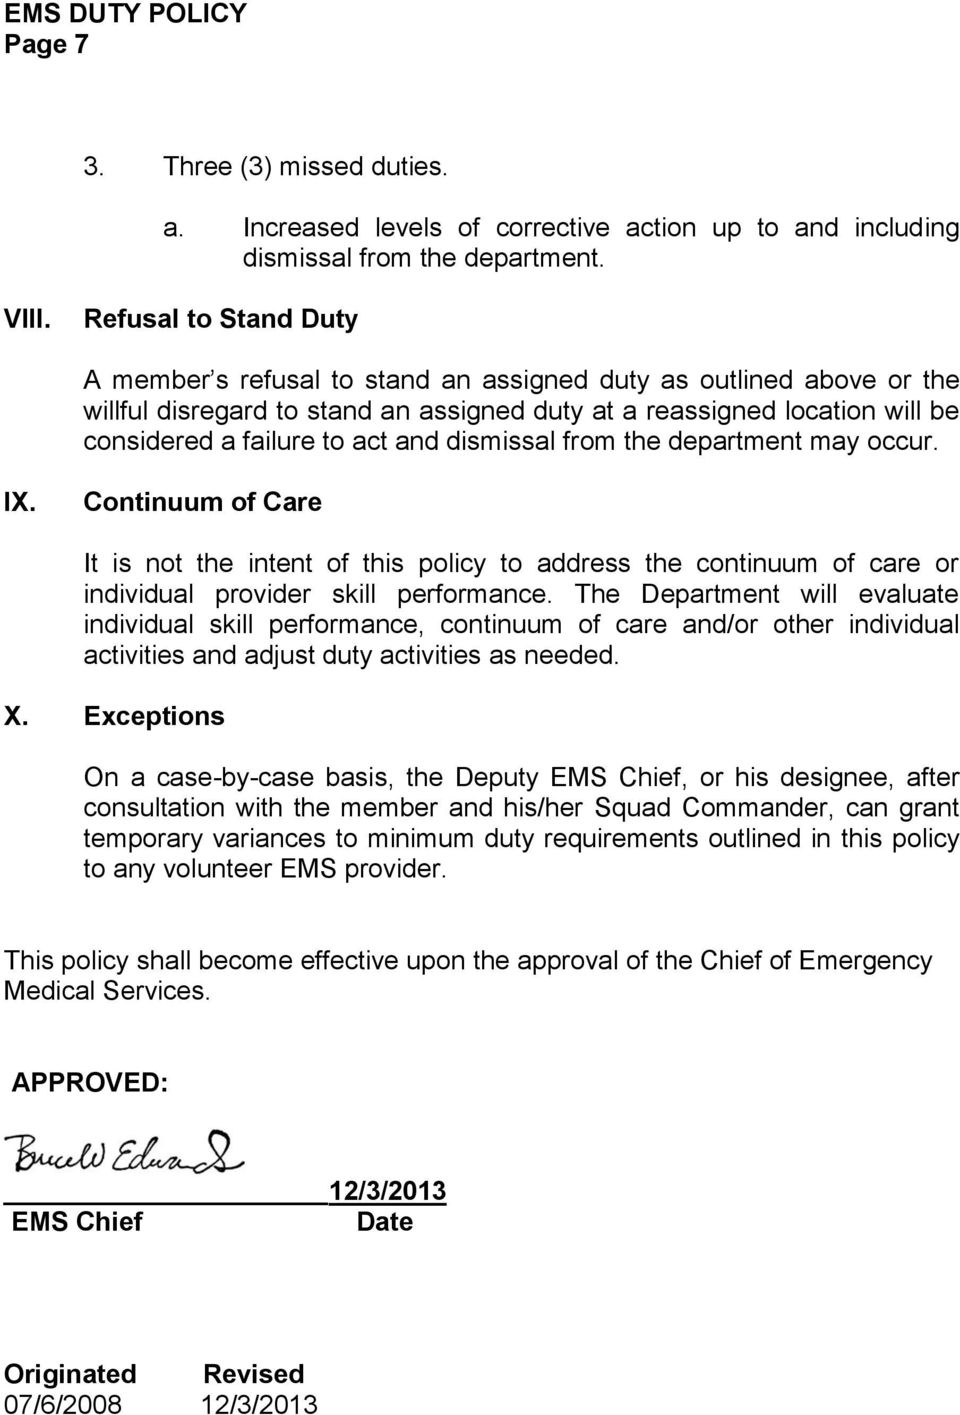 and dismissal from the department may occur. IX. Continuum of Care It is not the intent of this policy to address the continuum of care or individual provider skill performance.